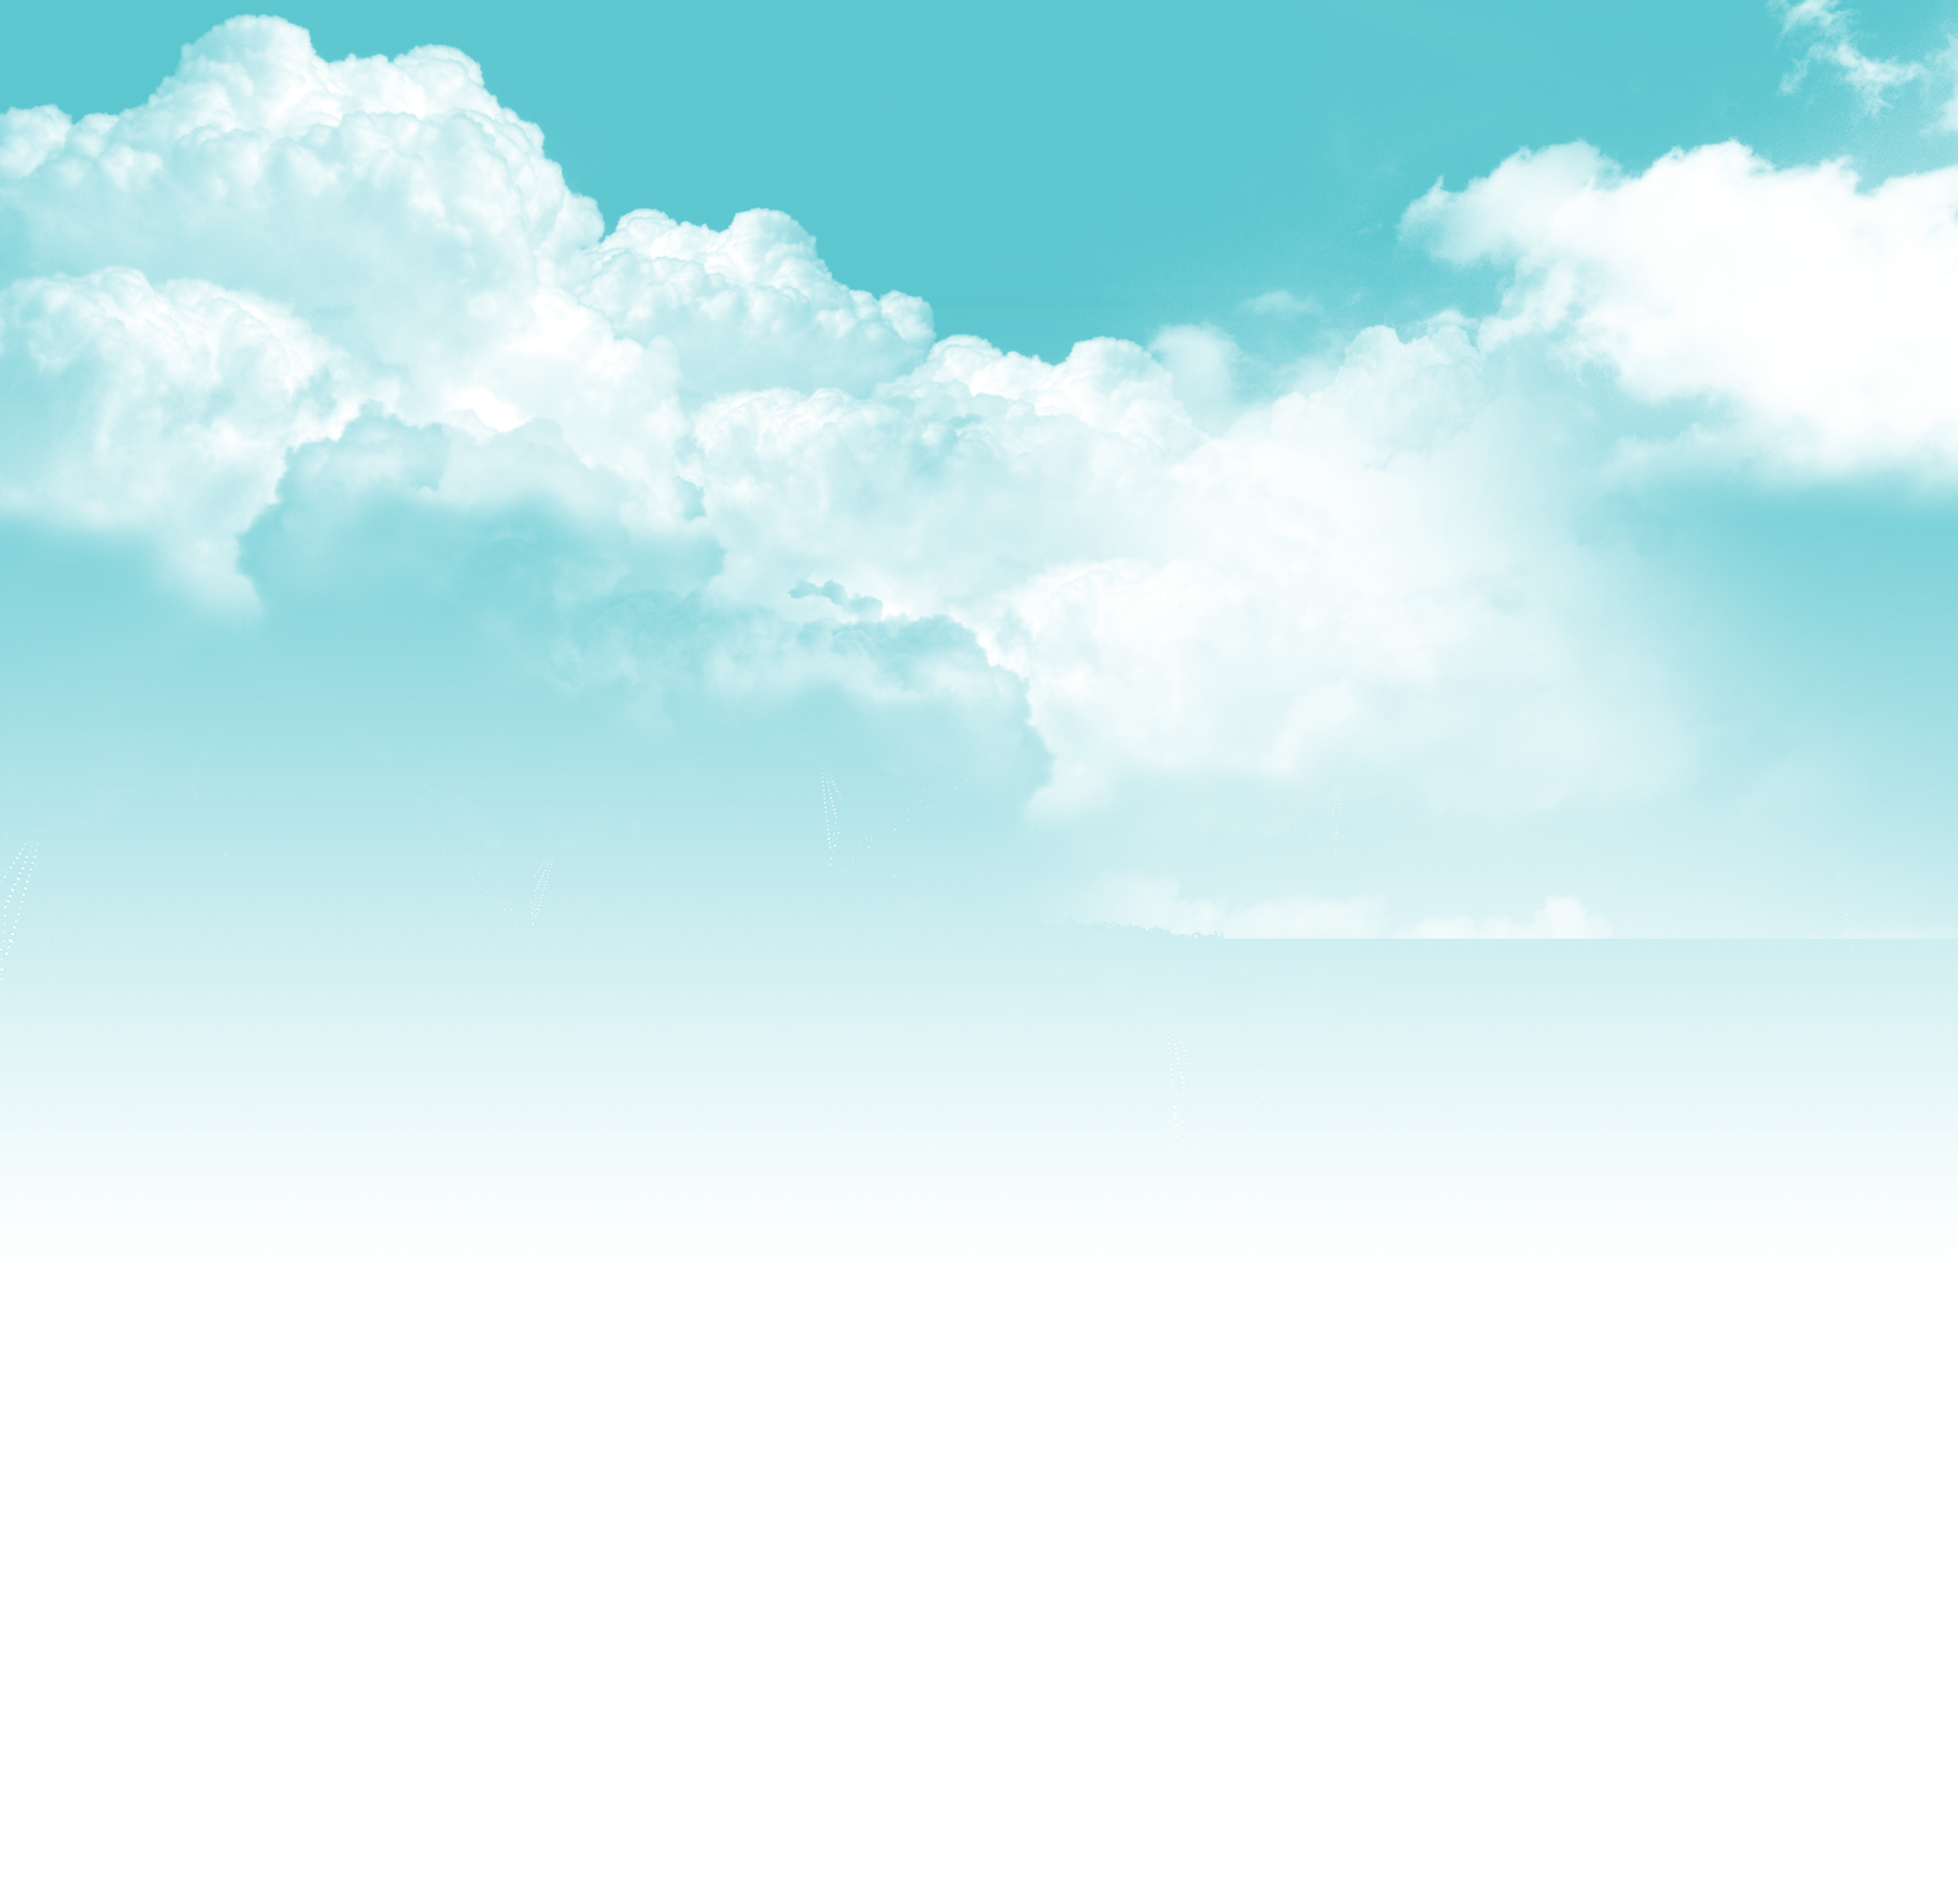 Pictures Of Clouds In The Sky Cloud Png Transparent Free Download Clouds Blue Sky Clouds Blue Sky Background